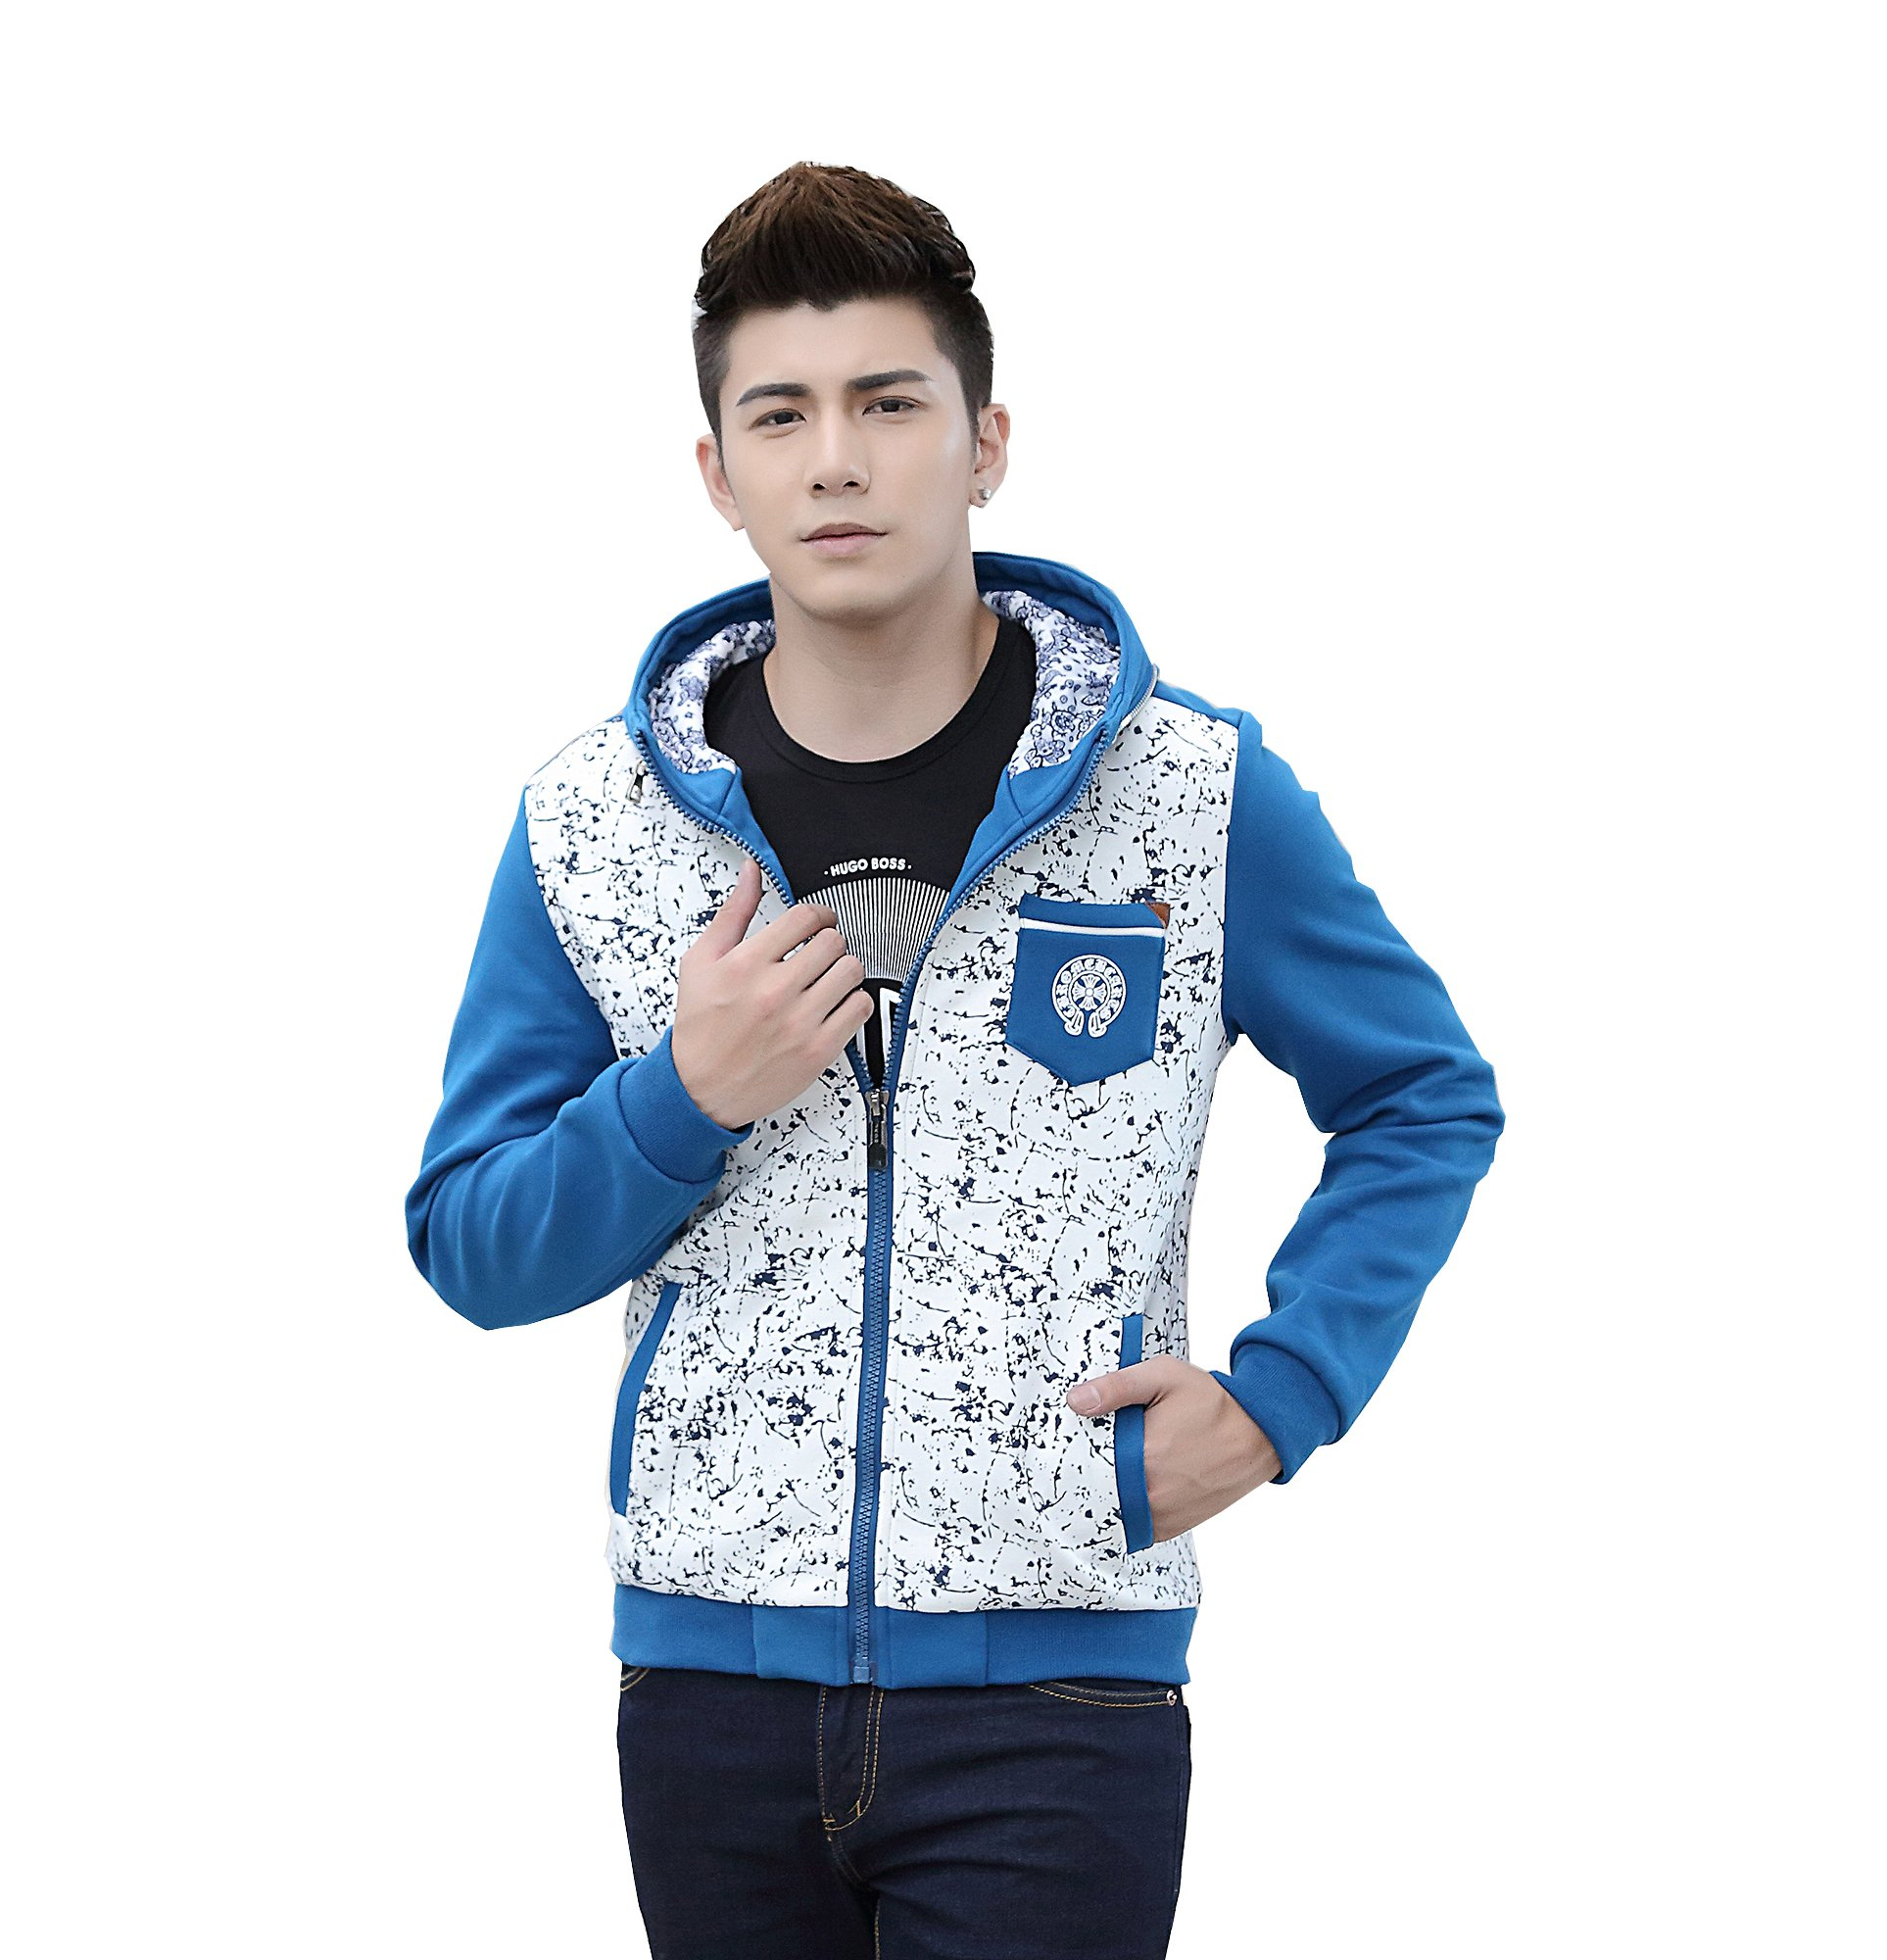 Colorfulworldstore Colorfulworldstore Young Men sweater coat-Korean fashion Boy's printing long-sleeved sweater (XL-Boys-114cm Bust, denim blue)